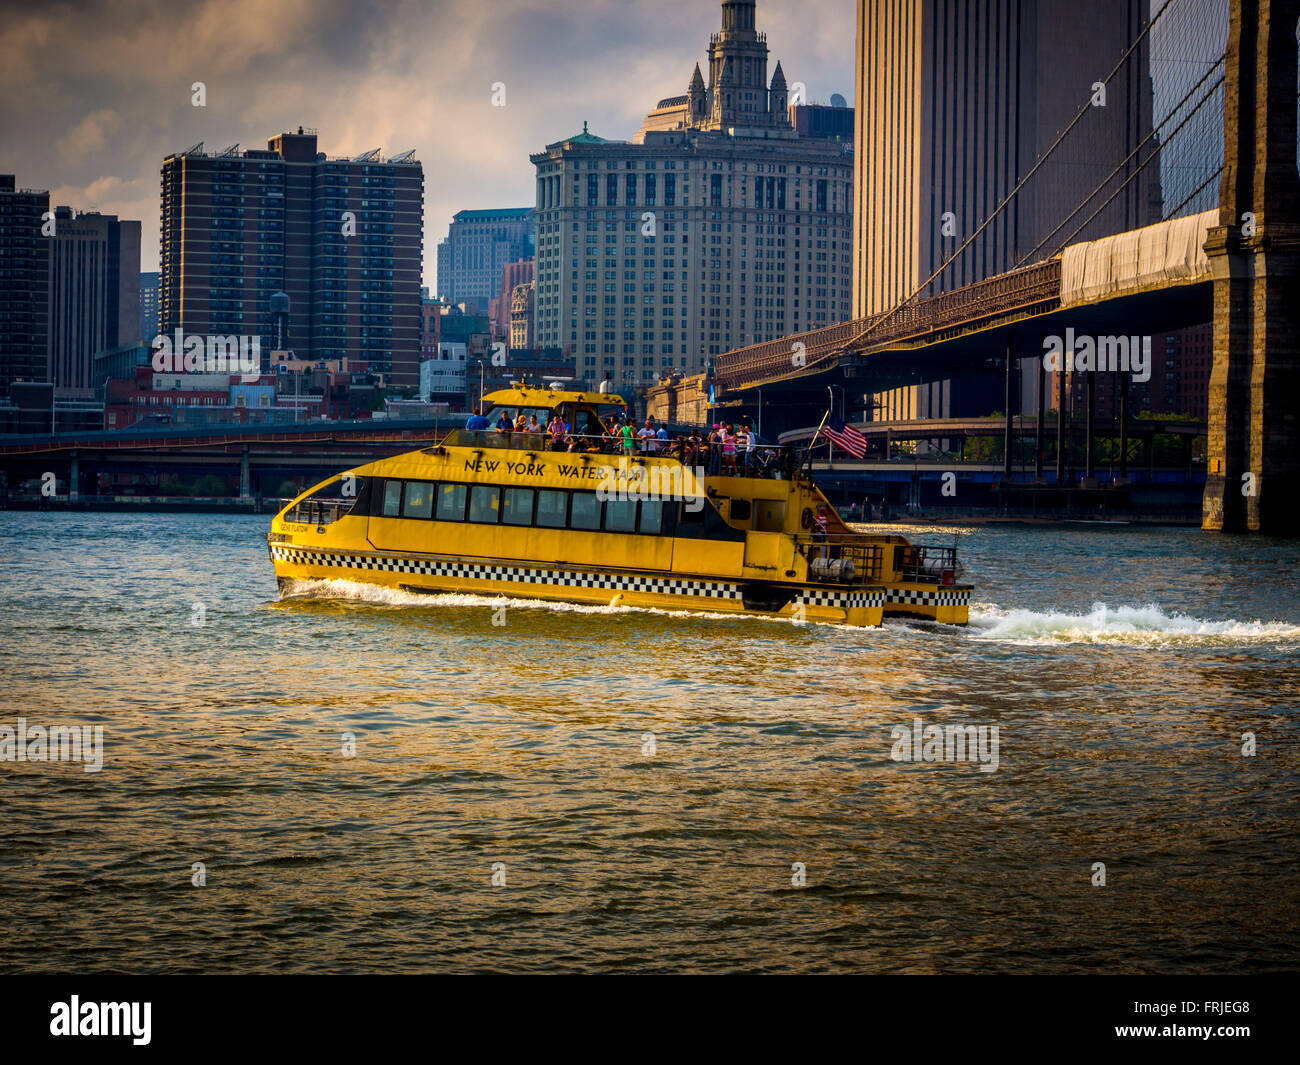 New York Water Taxi with Brooklyn Bridge on the East river, New York, USA - Stock Image